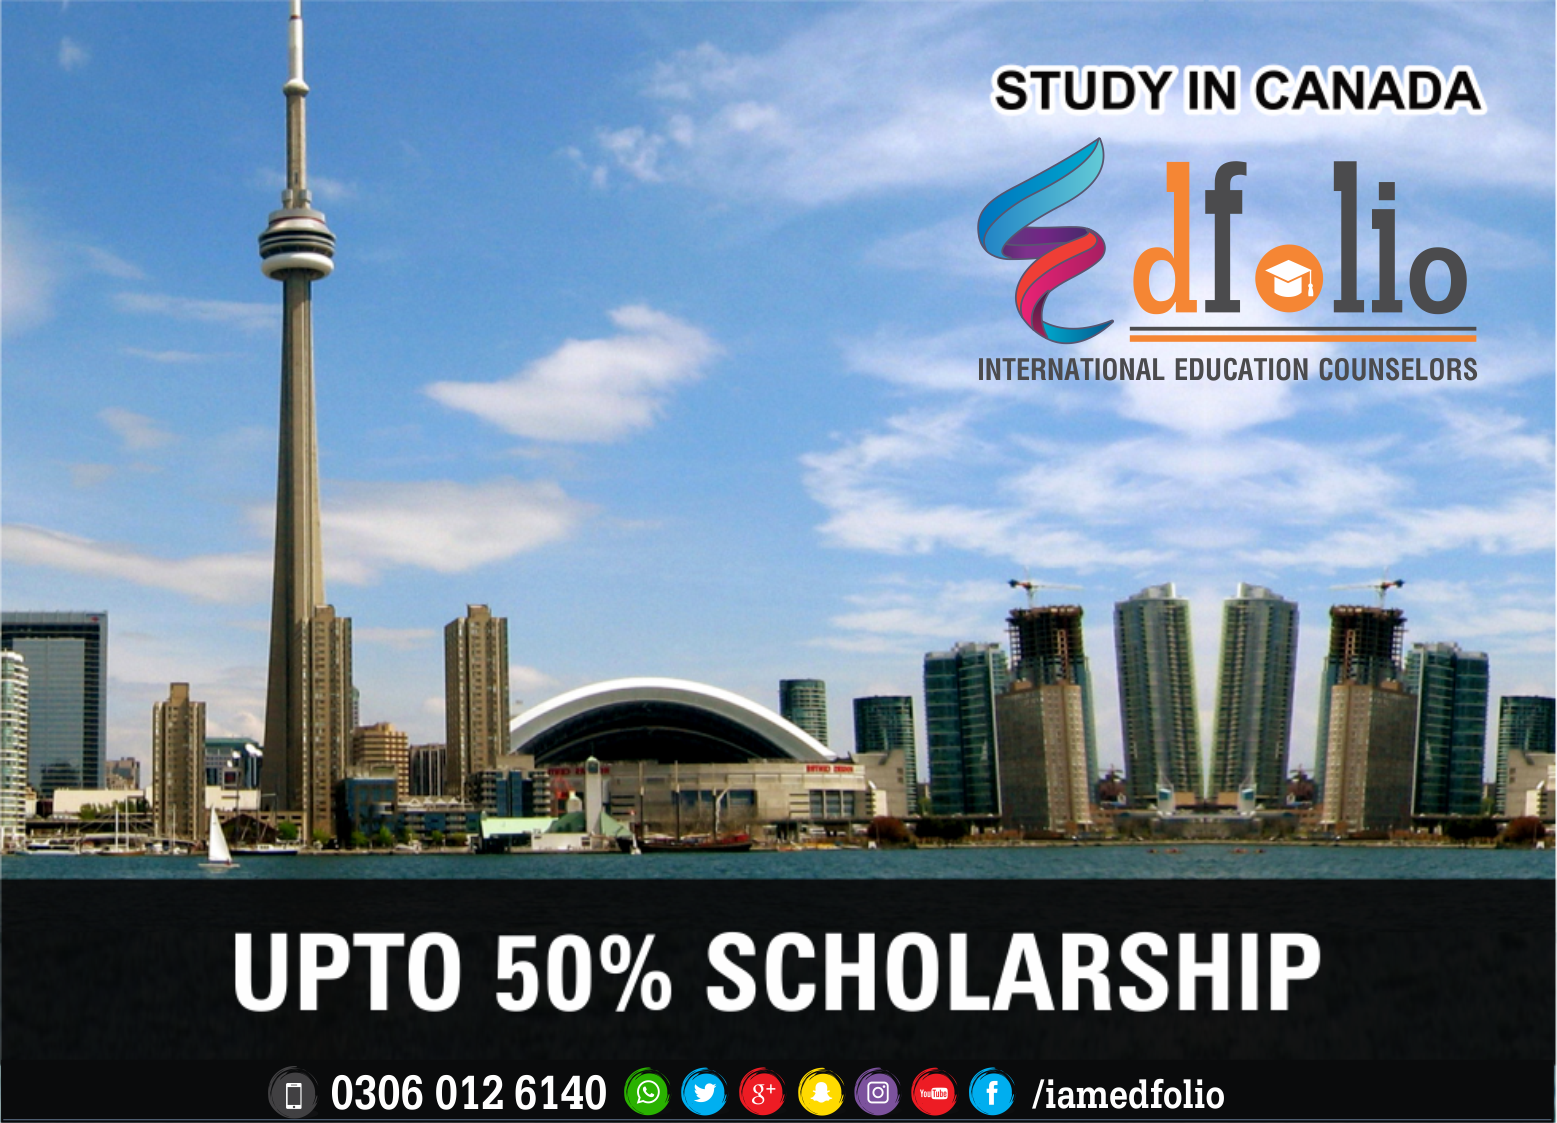 SCHOLARSHIPS IN CANADA - EdFolio International Education Consultant and Counselors